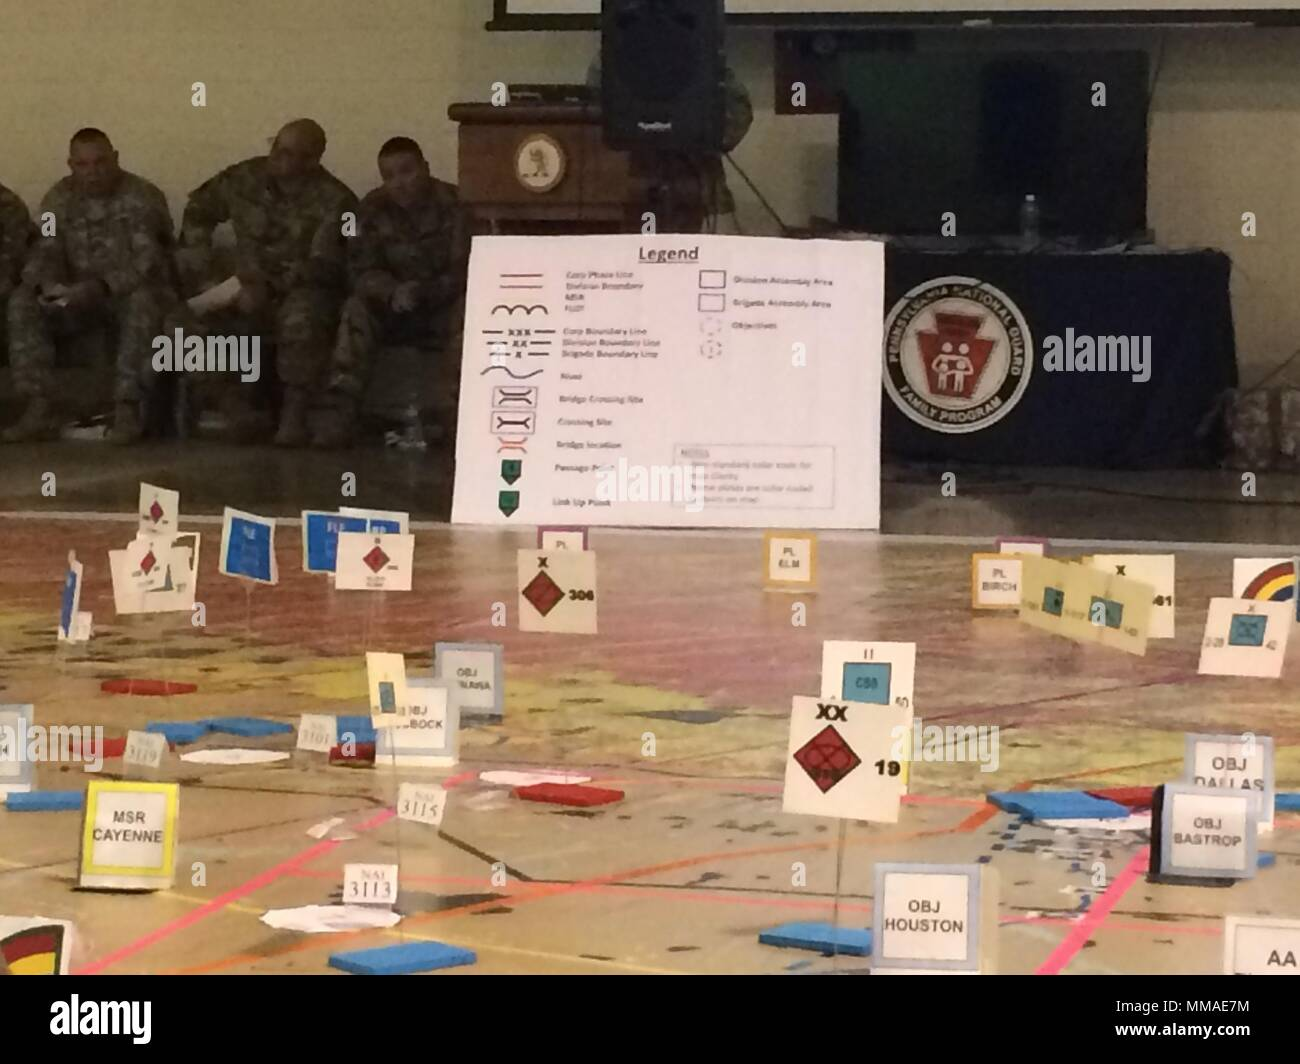 Cardboard markets indicate enemy units and objectives on a giant map at Fort Indiantown Gap, Pennsylvania on Oct. 4, 2017, as leaders of the New York Army National Guard's 42nd Infantry Division conduct a Rehearsal of Concept exercise during their Warfighter exercise. Leaders move markers representing their units and discuss their actions at that phase of the battle to ensure that all leaders and staff understand the plan. ( U.S. Army National Guard photo by Capt. Jean Kratzer) - Stock Image